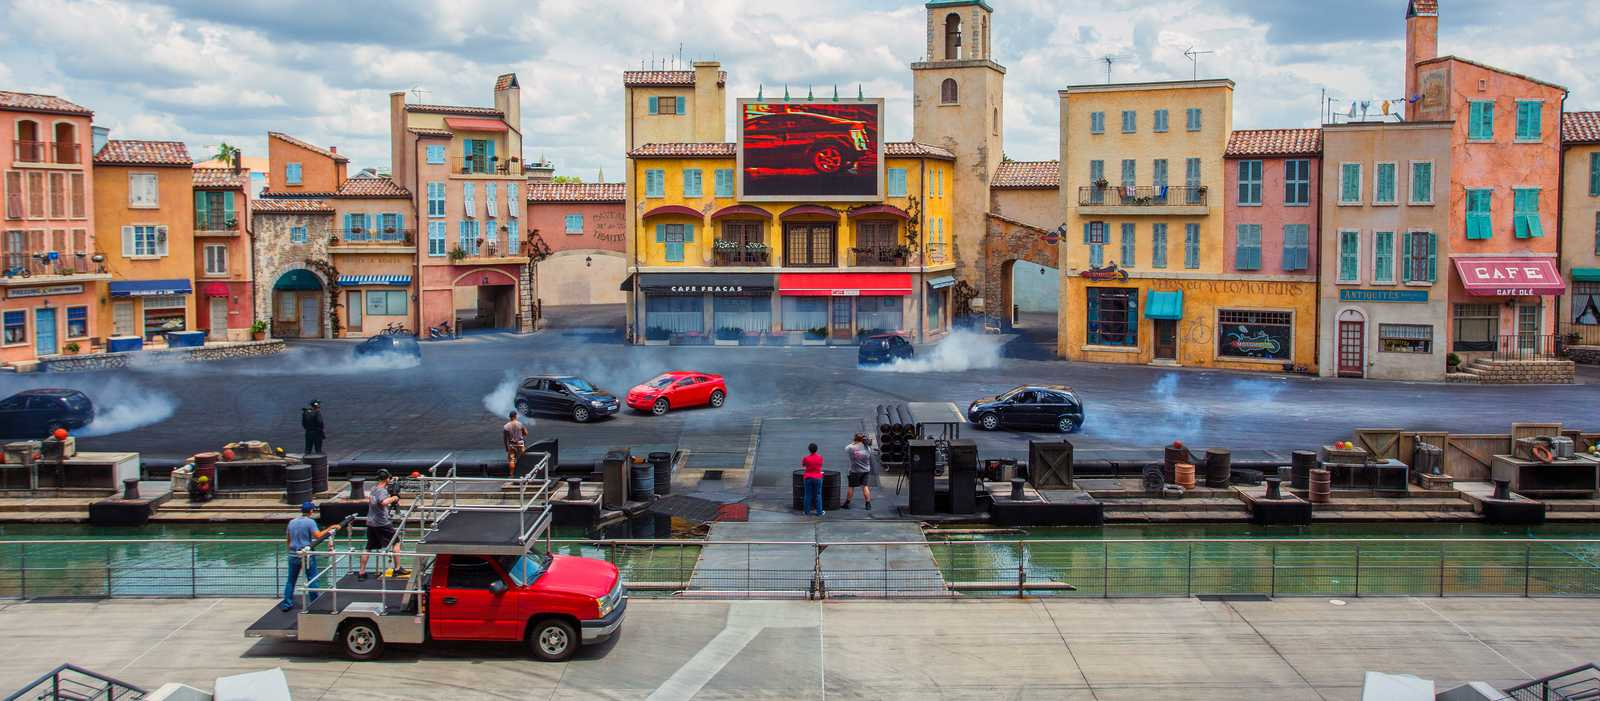 Motor Stun Show, Disney Hollywood Studios, Orlando